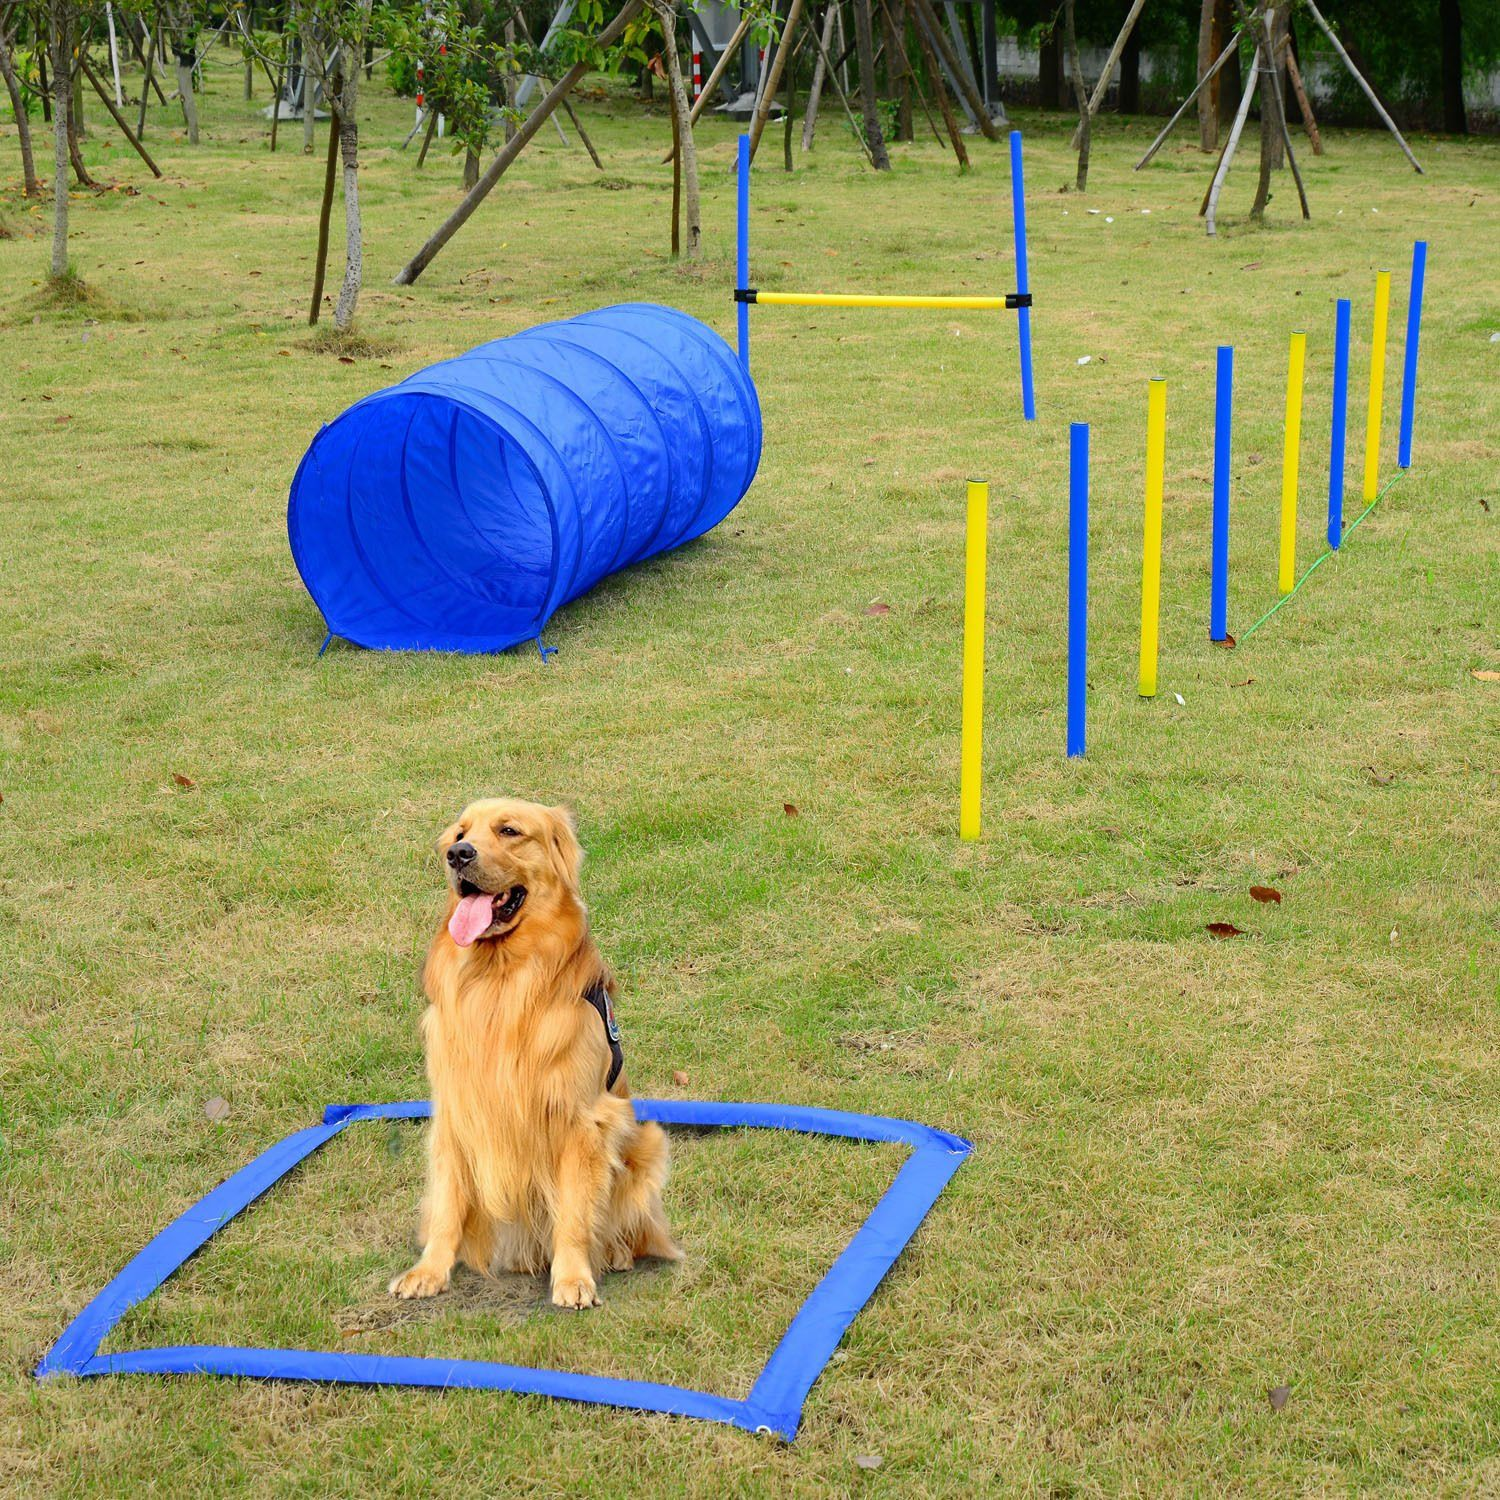 Festnight Outdoor Dog Obstacle Agility Training Exercise Equipment